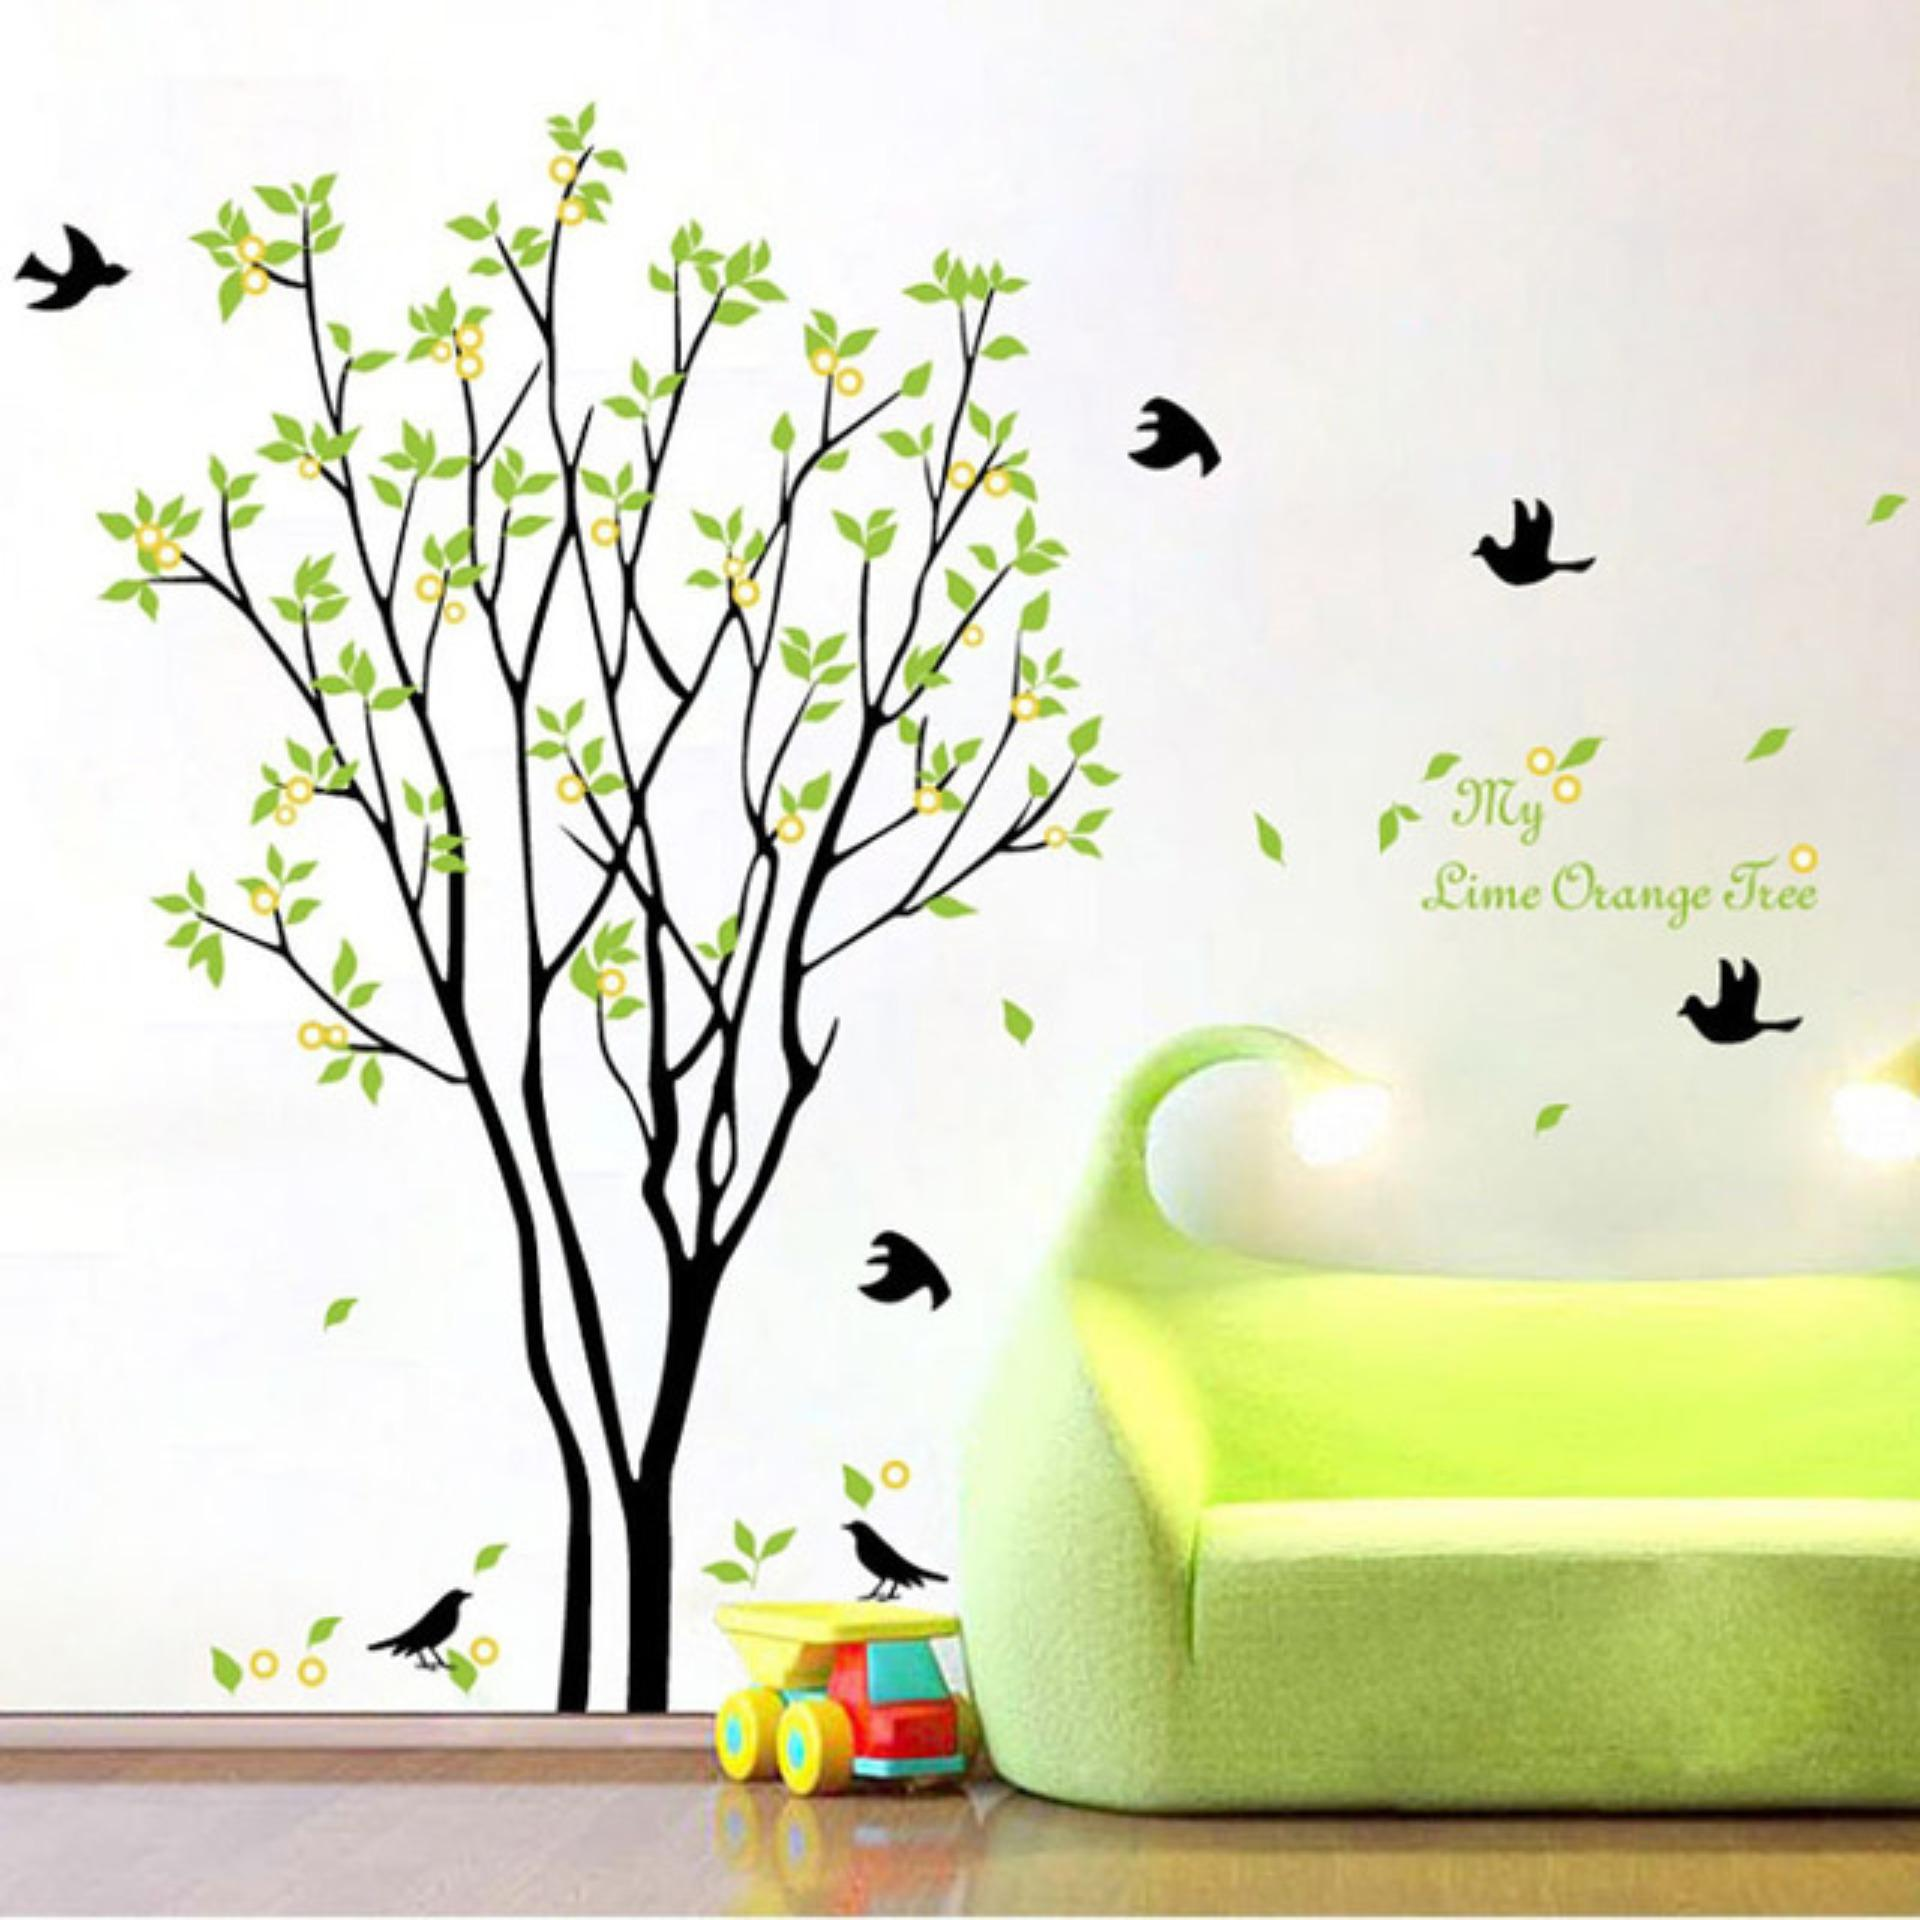 Rp 40.000. Wallsticker Lime Orange AY9094 - Stiker Dinding / Wall Sticker IDR40000